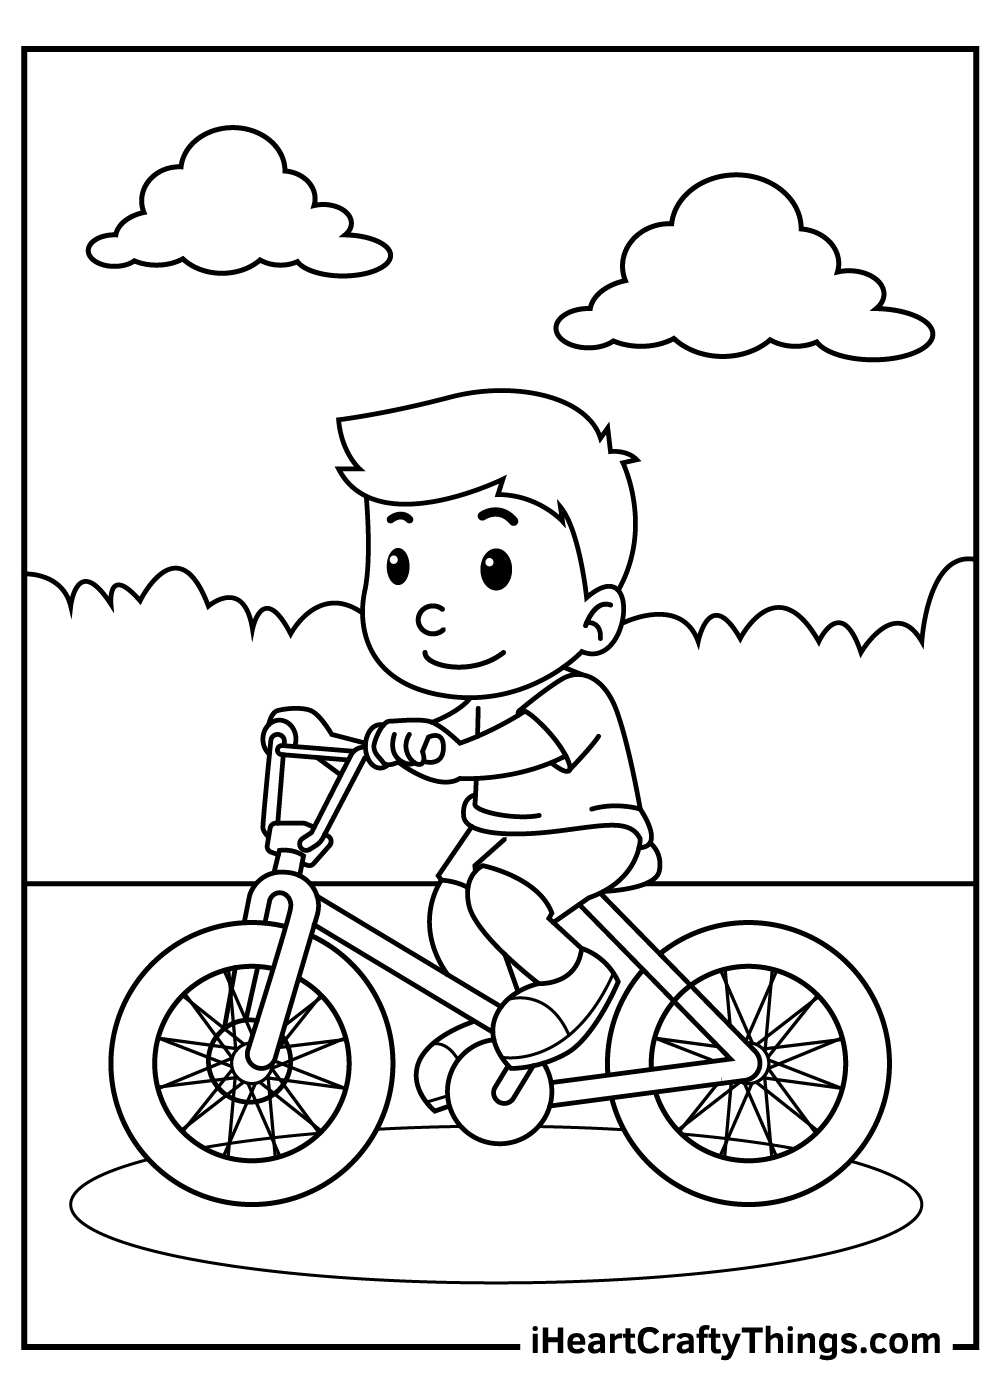 boy on a bicycle coloring pages free download